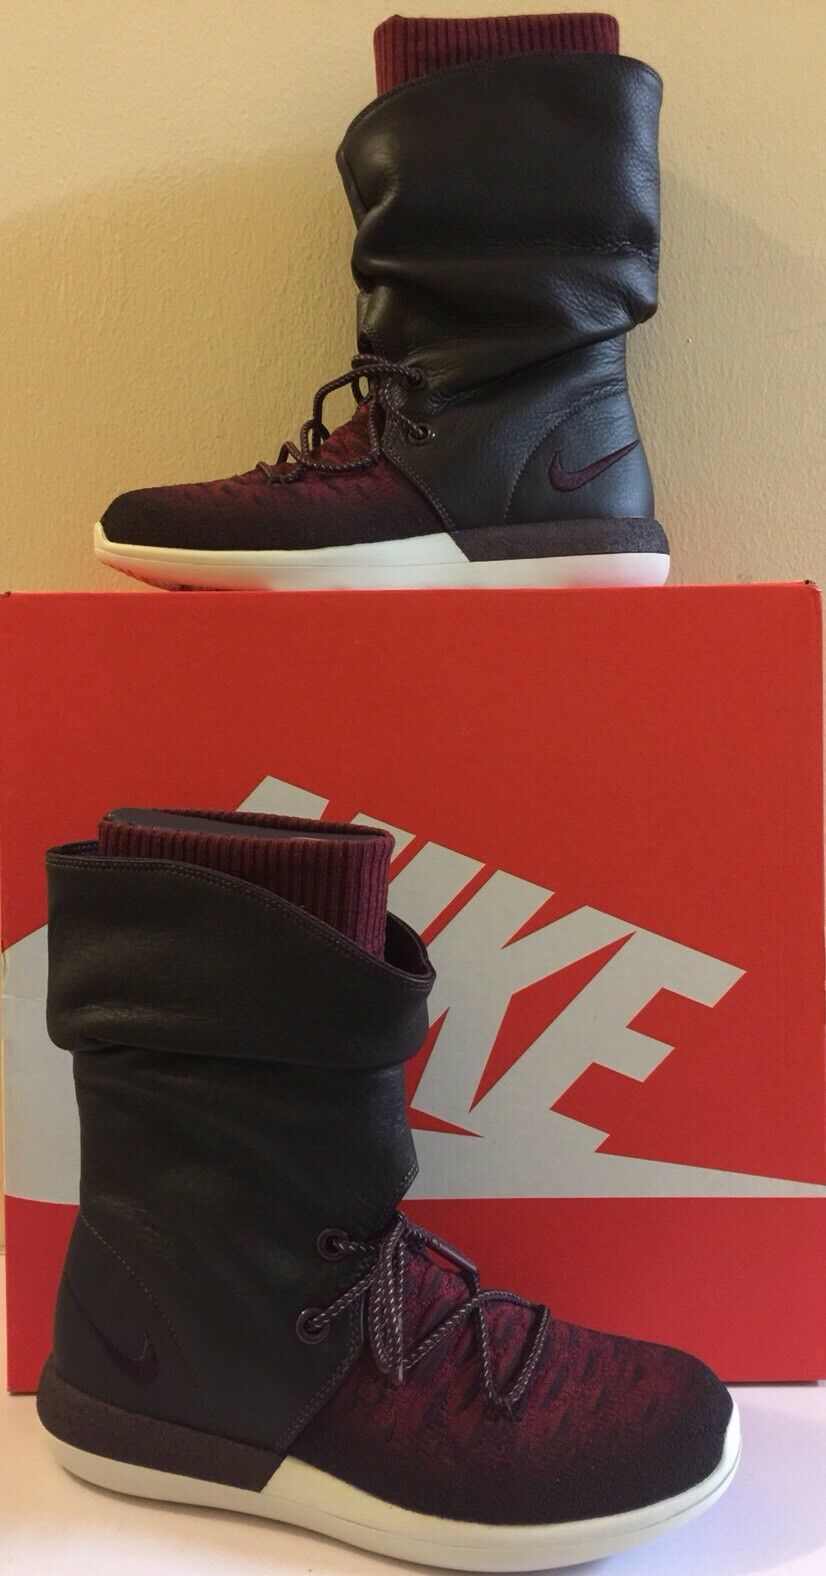 W Roshe Two Hi Flyknit Winter Bottes Bnib